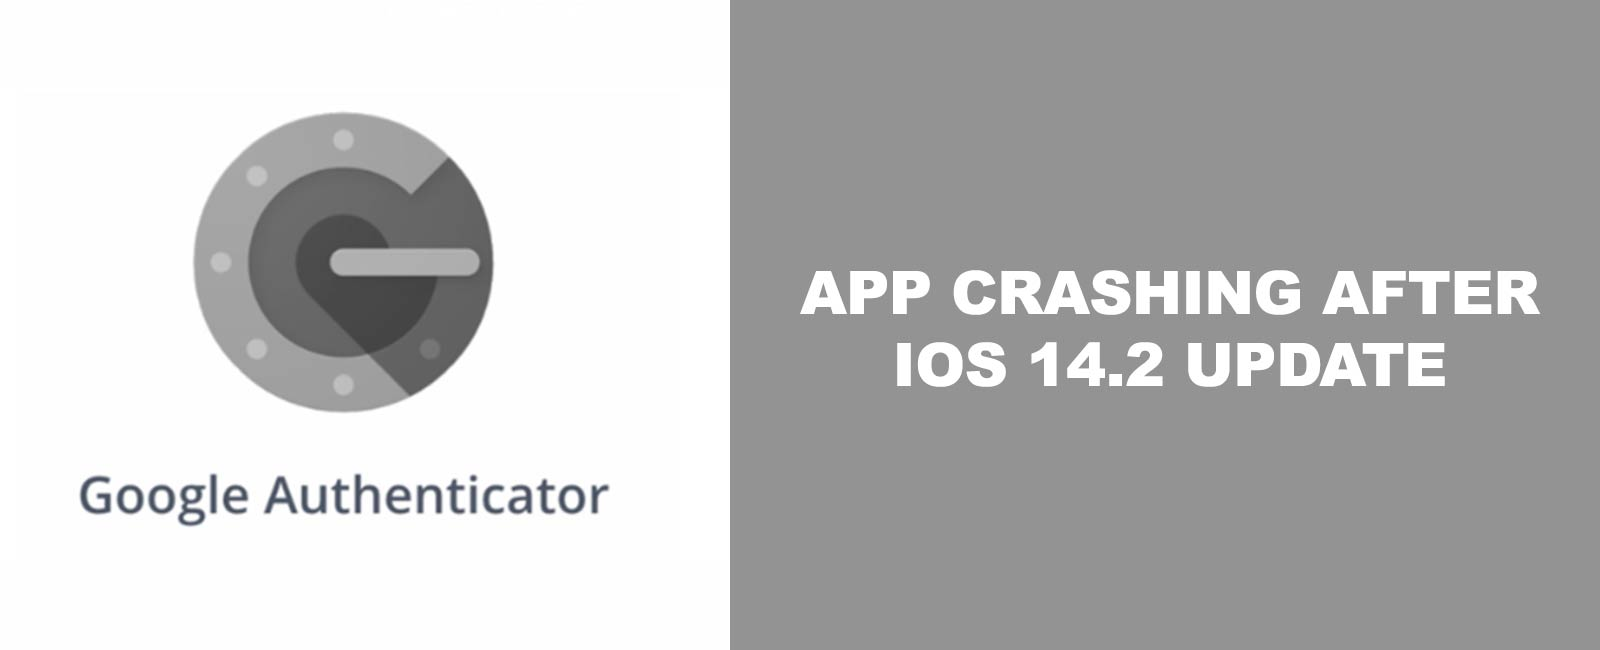 Featured Image Google Authenticator App Crashes on iOS 14.2 Solution